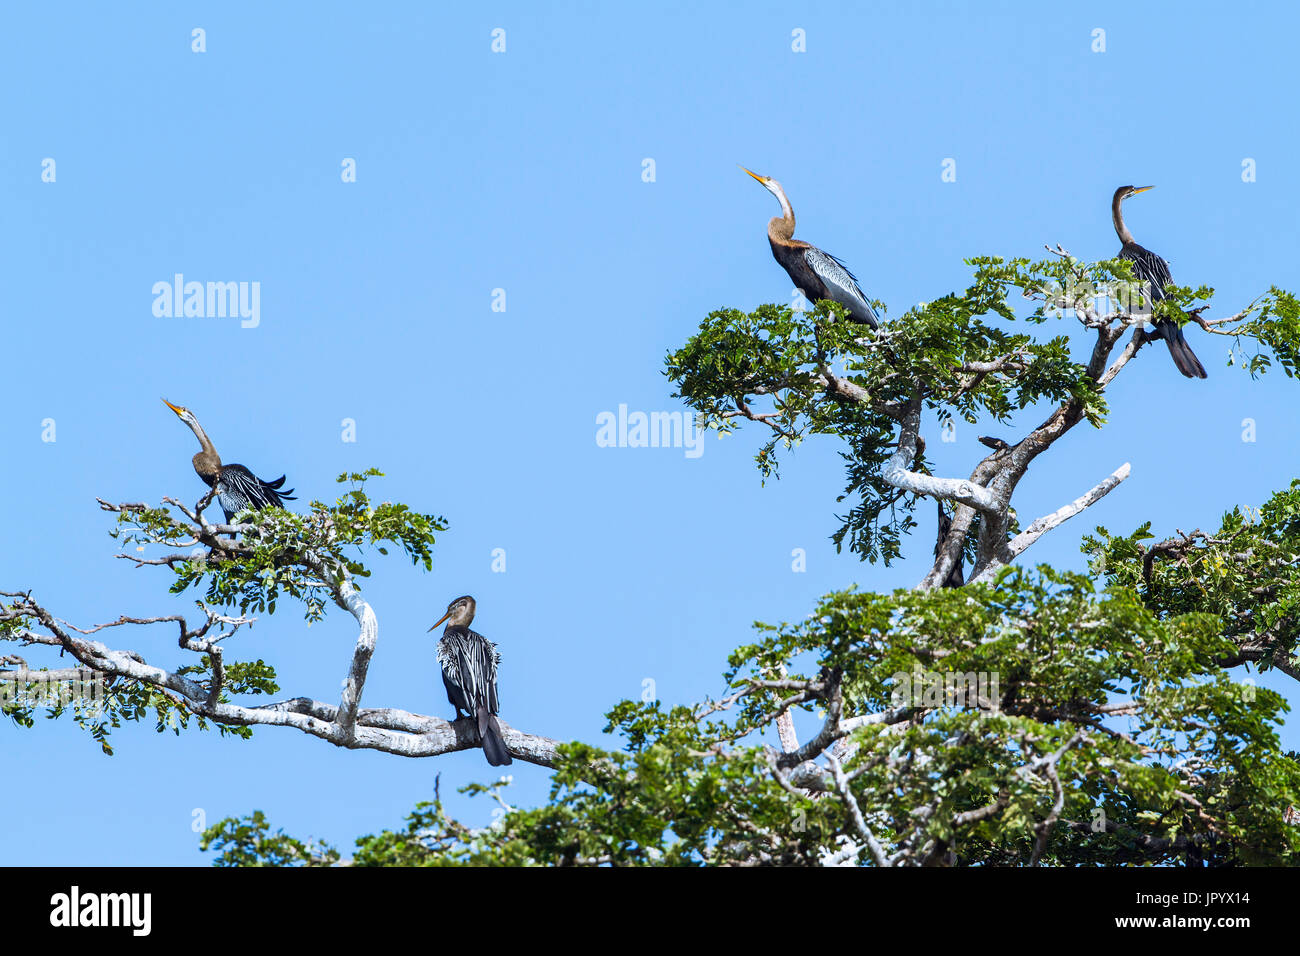 Oriental Darter (Anhinga melanogaster) on a tree, Tissa wewa, Yala national park, Sri Lanka - Stock Image